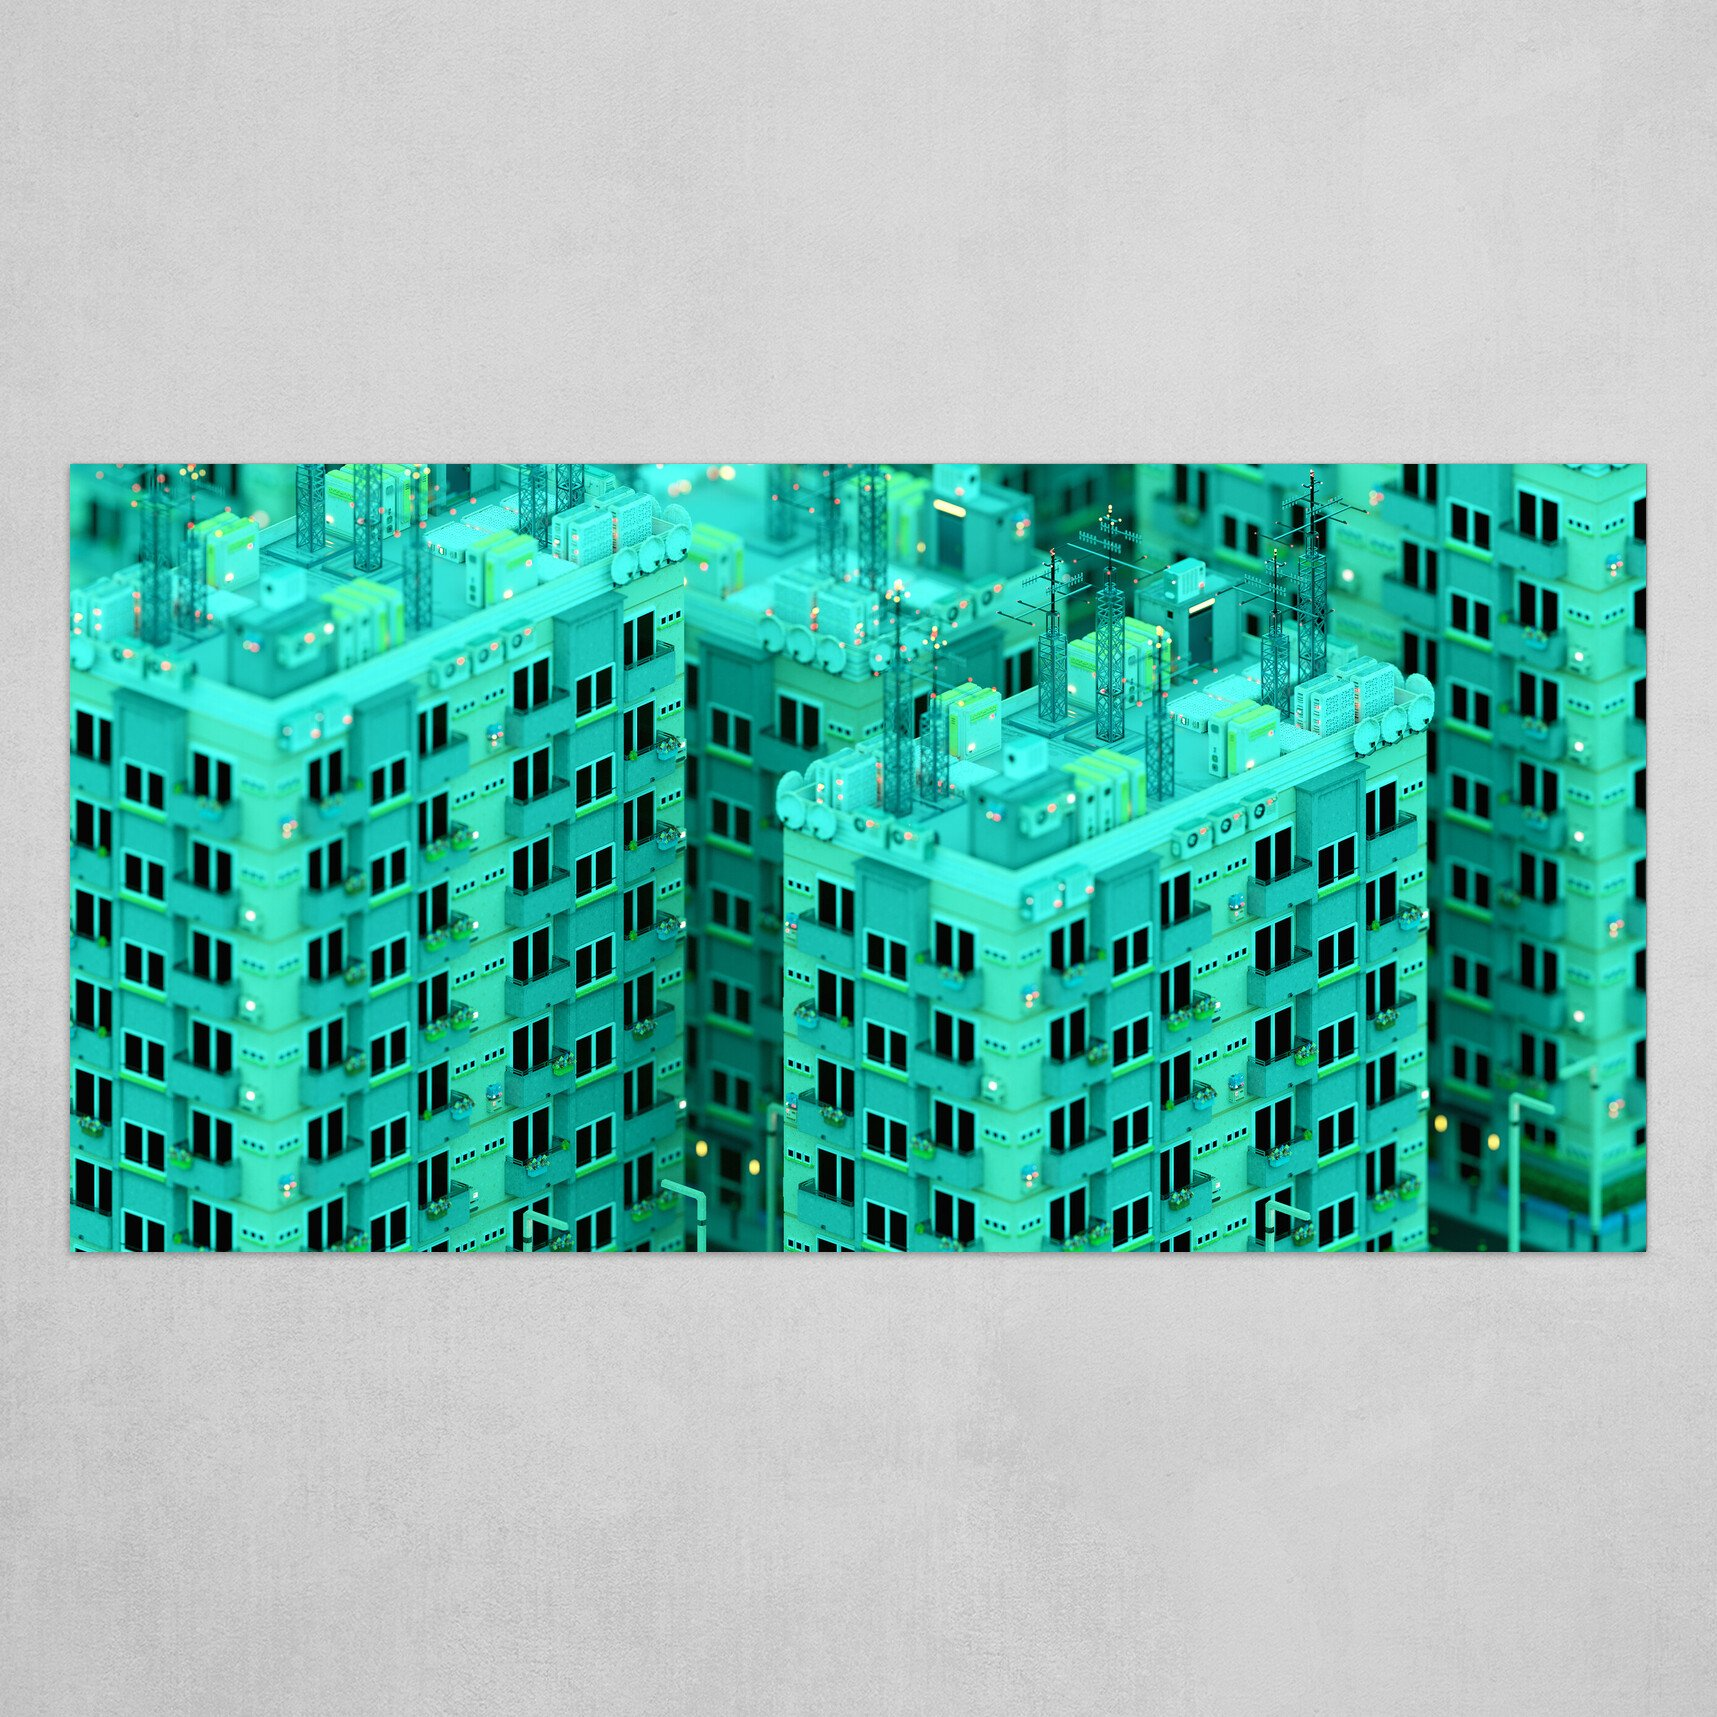 Voxel City n°2- Day